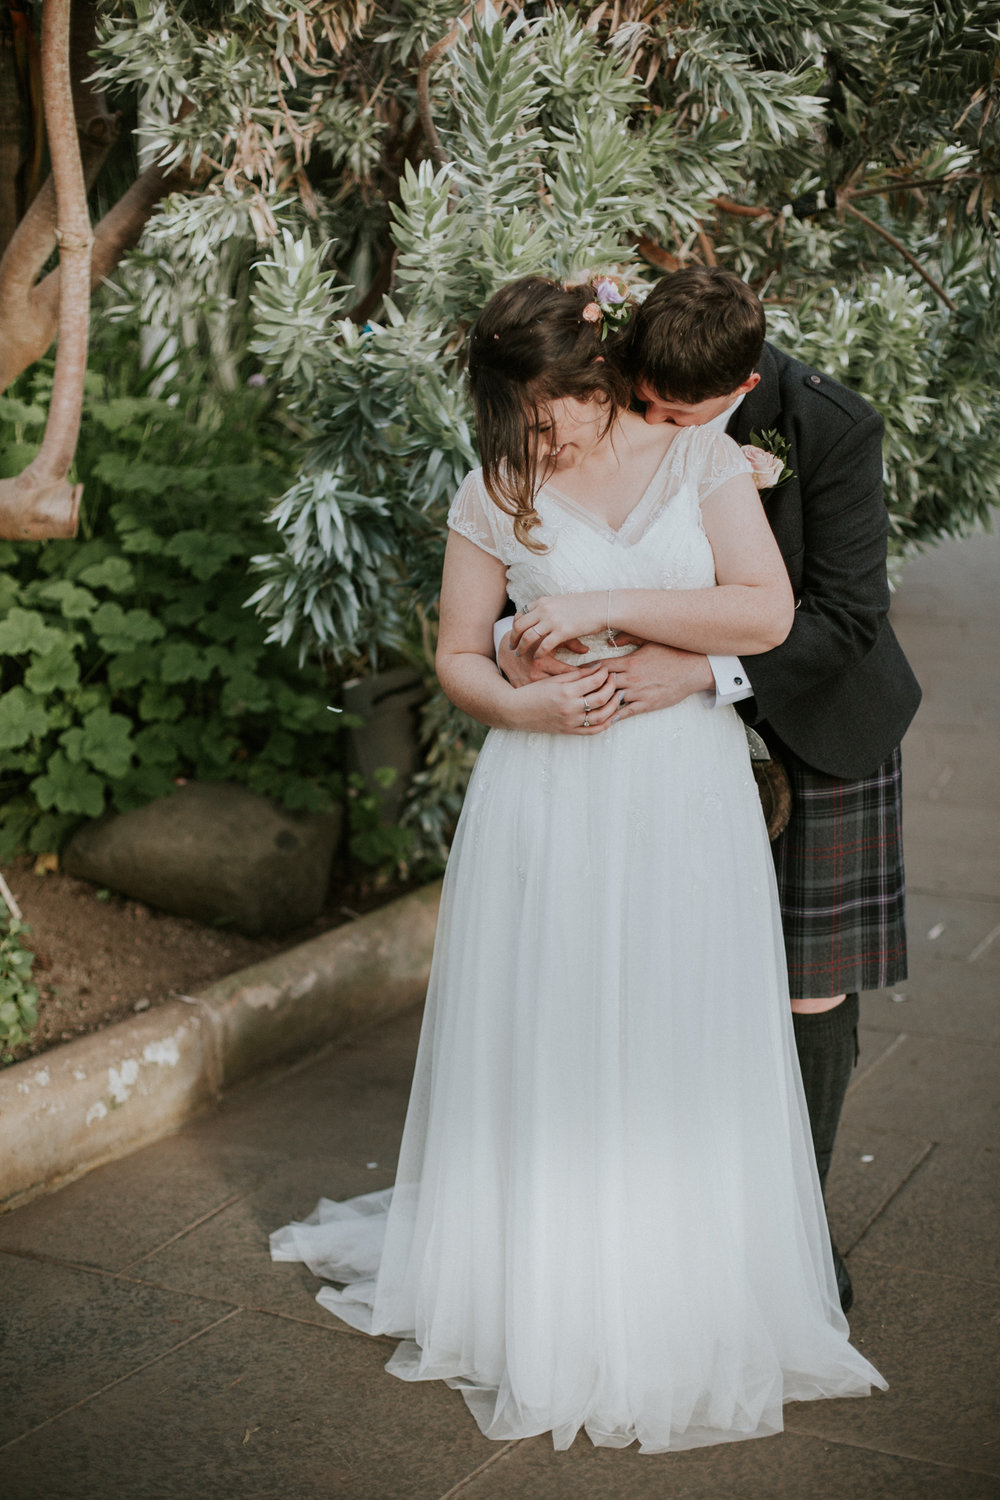 Relaxed and natural couple portrait at the Botanic Gardens in Glasgow